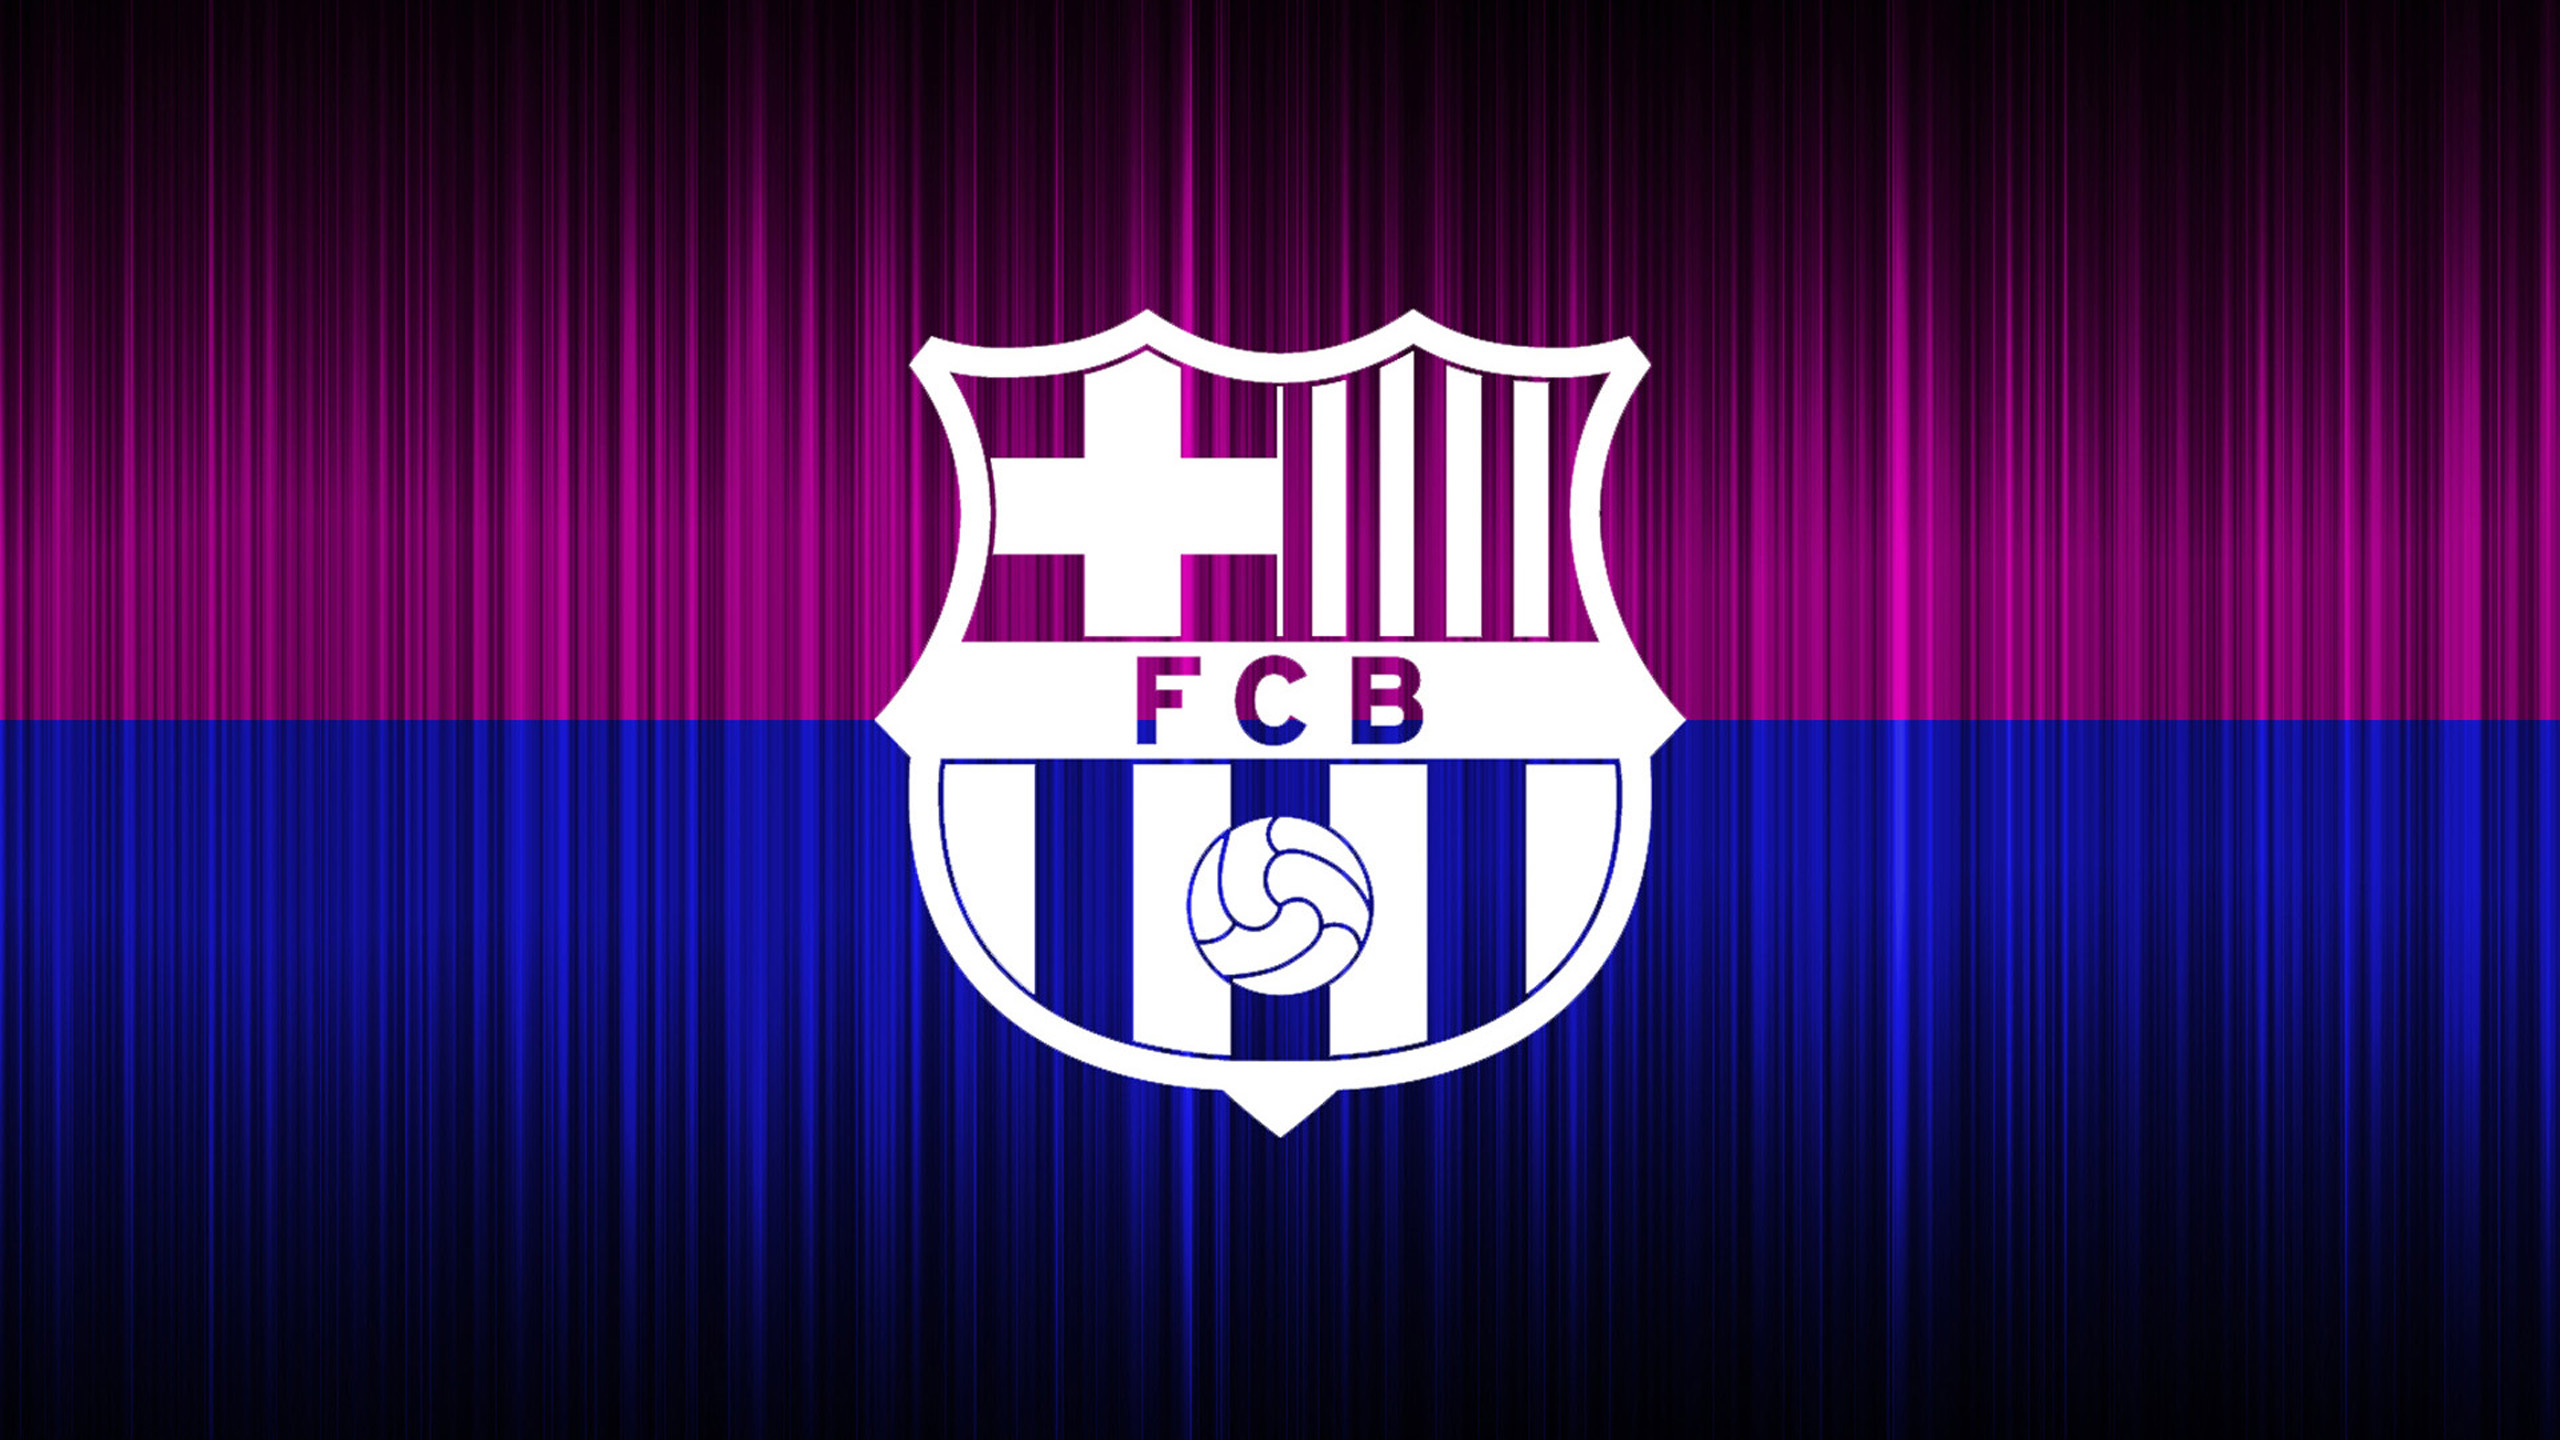 Fcb wallpapers hd free download pixelstalk net for Wallpapers hd gratis